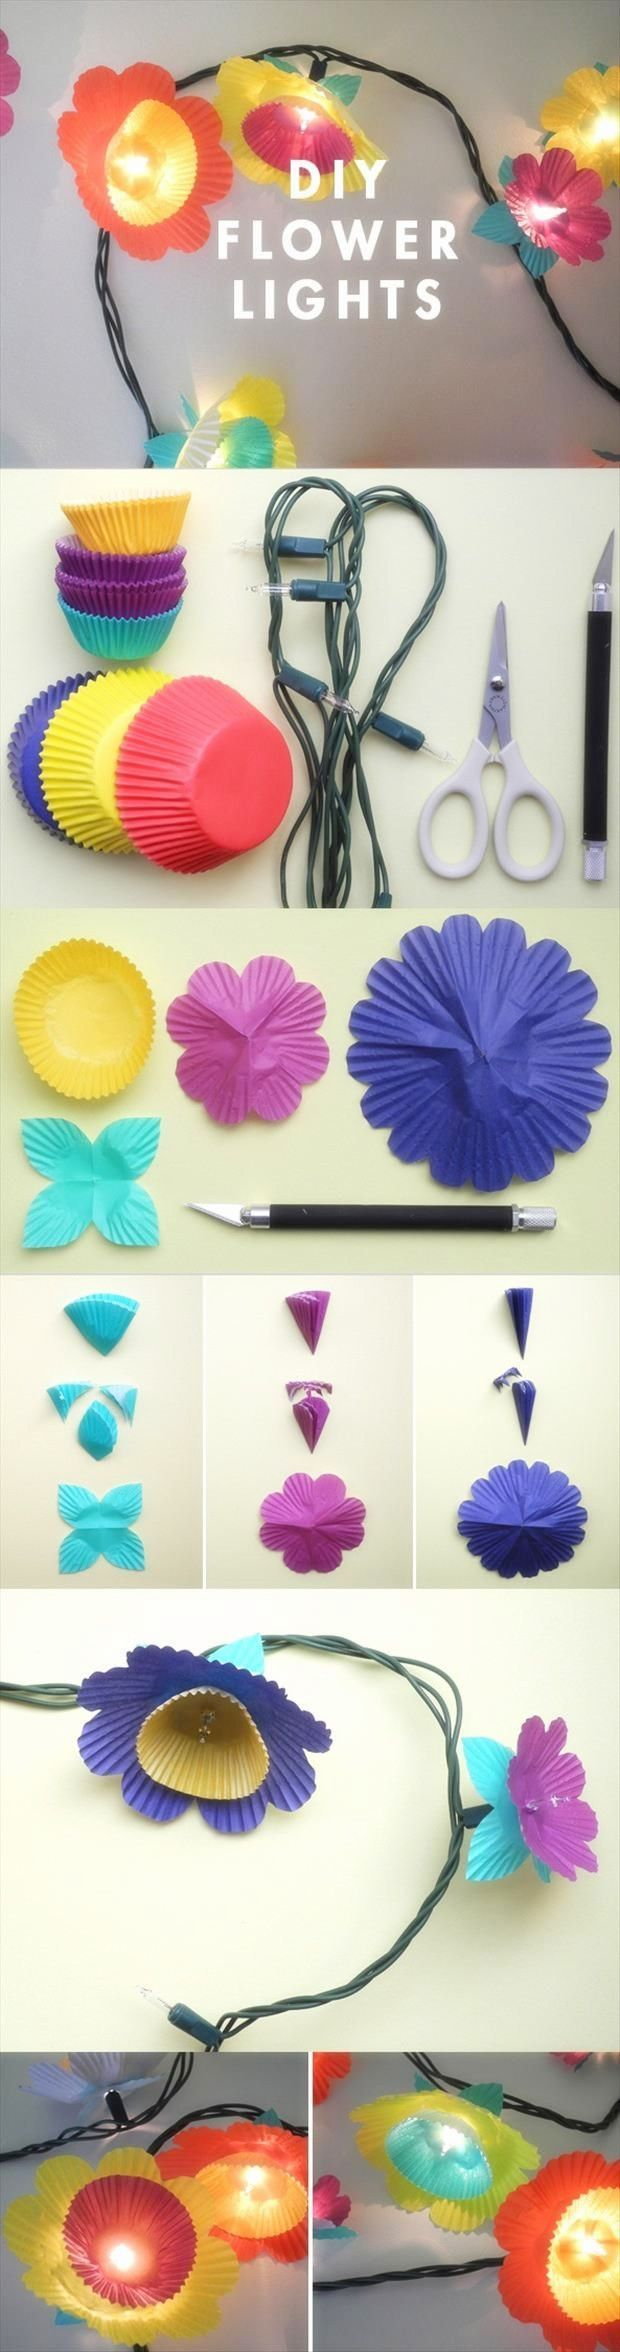 Easy Diy Crafts For Home Diy Home Craft Ideas Tips